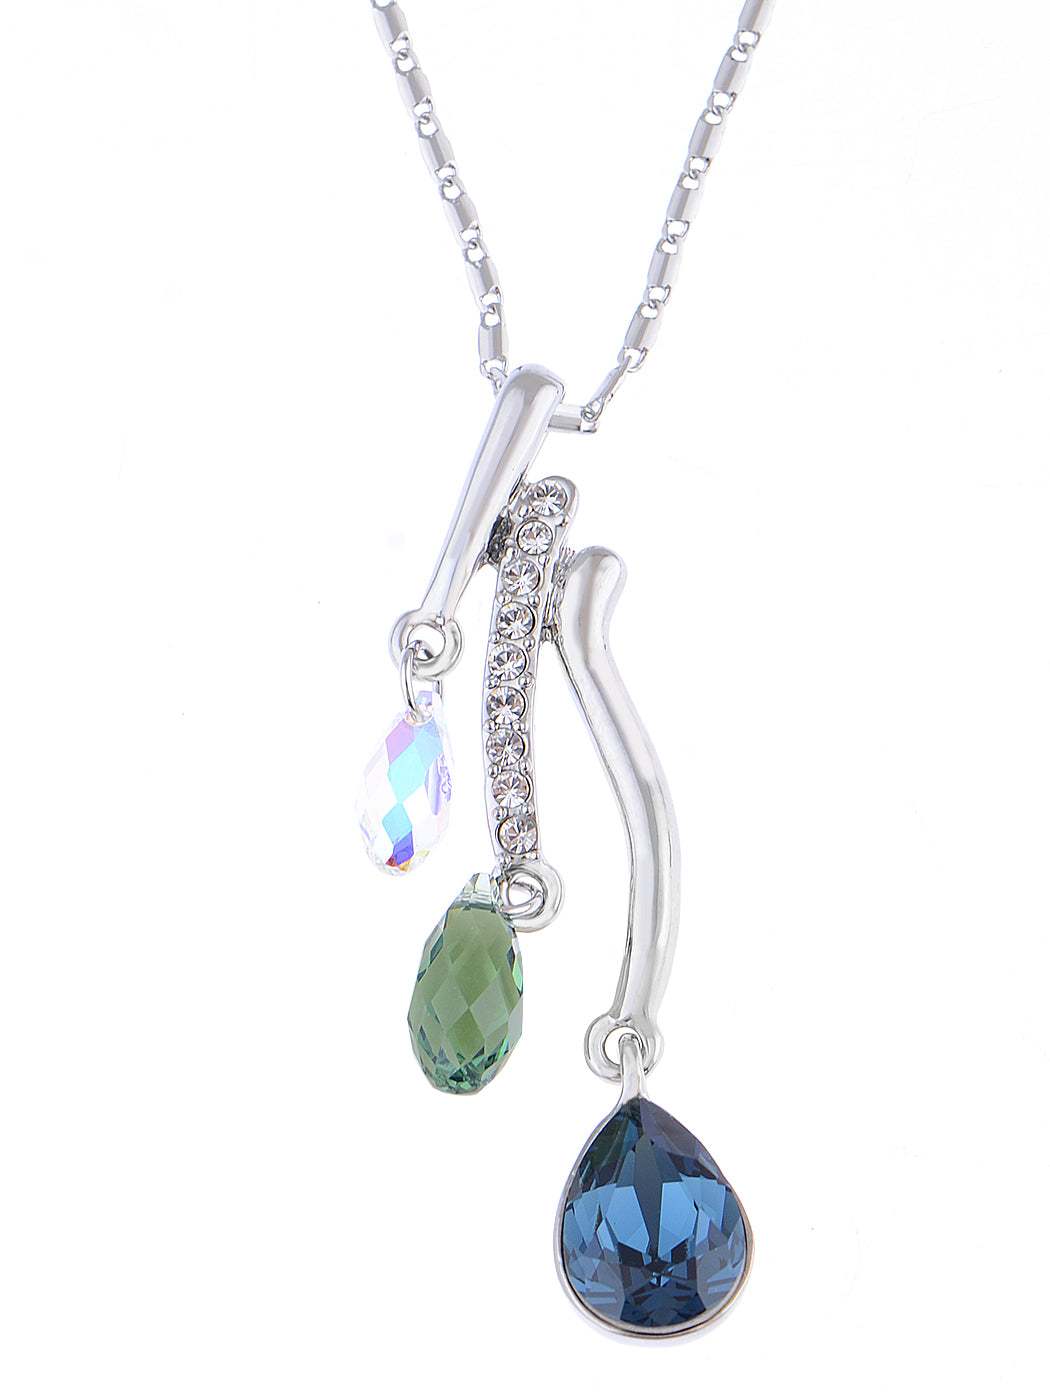 Swarovski Crystal Multicolor Trio Elements Pendant Teardrop Necklace